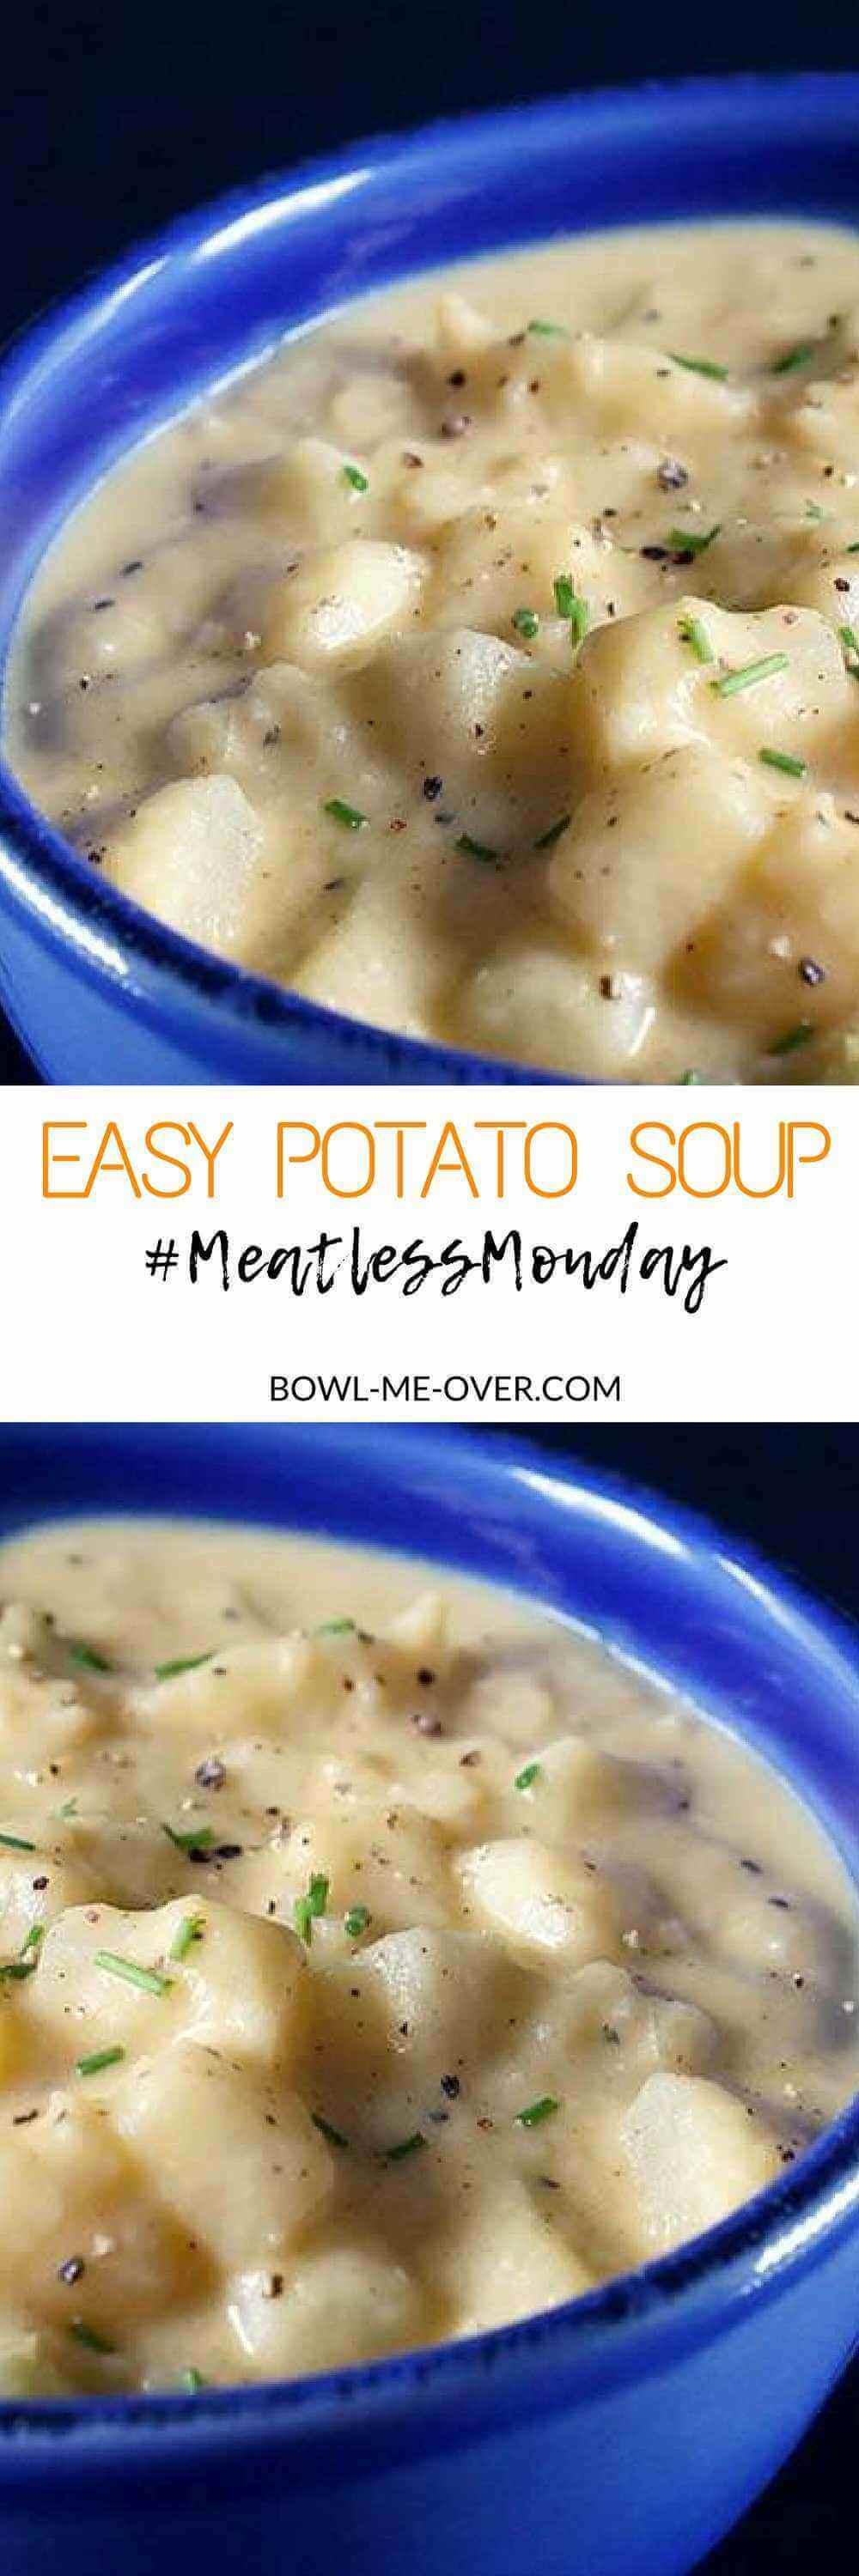 Easy Potato Soup made with simple ingredients for the most savory and delicious meal! This is a thick, creamy filling soup that is easy to make. This vegetarian potato soup is hearty and filling and simply scrumptious! #meatlessmonday #vegetarian #vegetarianpotatosoup #soupisgoodfood #bowlmeover #souperchefdeb #quickandeasy